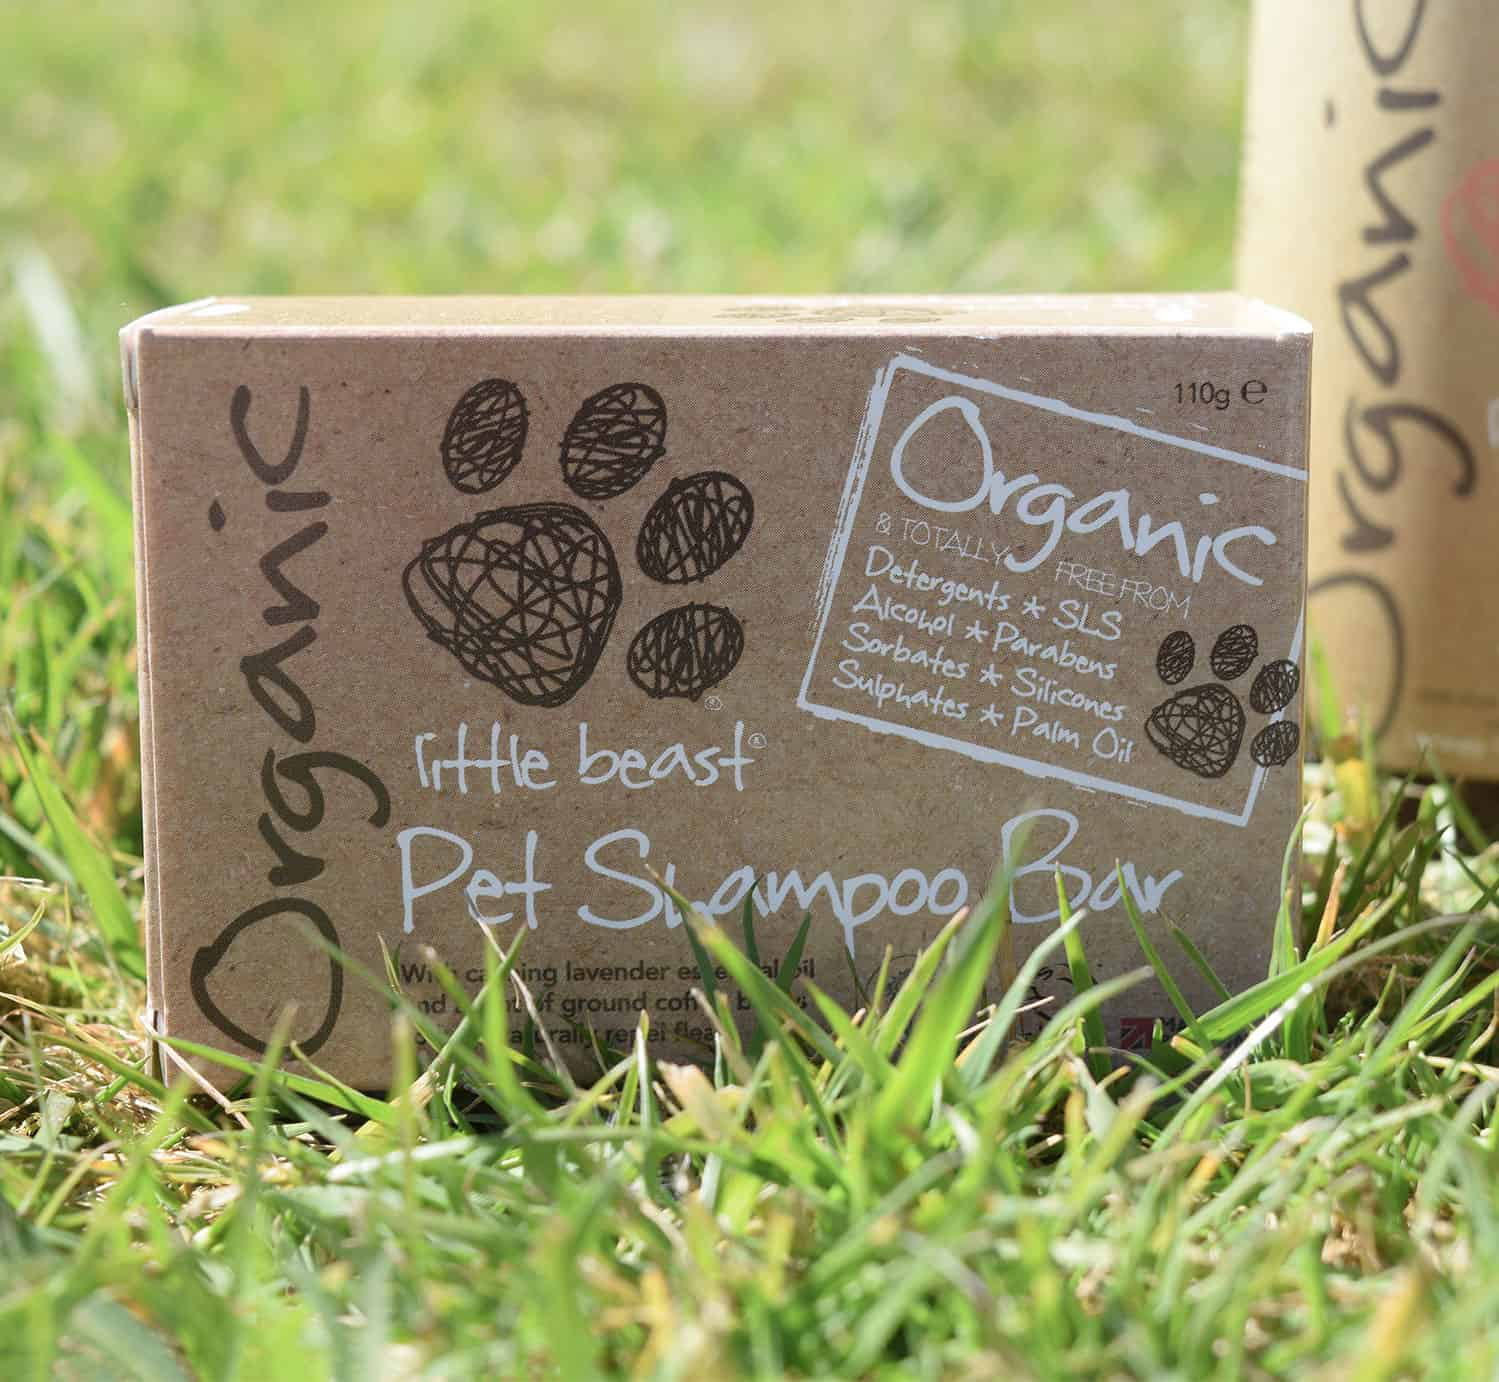 Little Beast Pet Shampoo Bar: Everything You Need to Know_LittleSoapCompany.co.uk